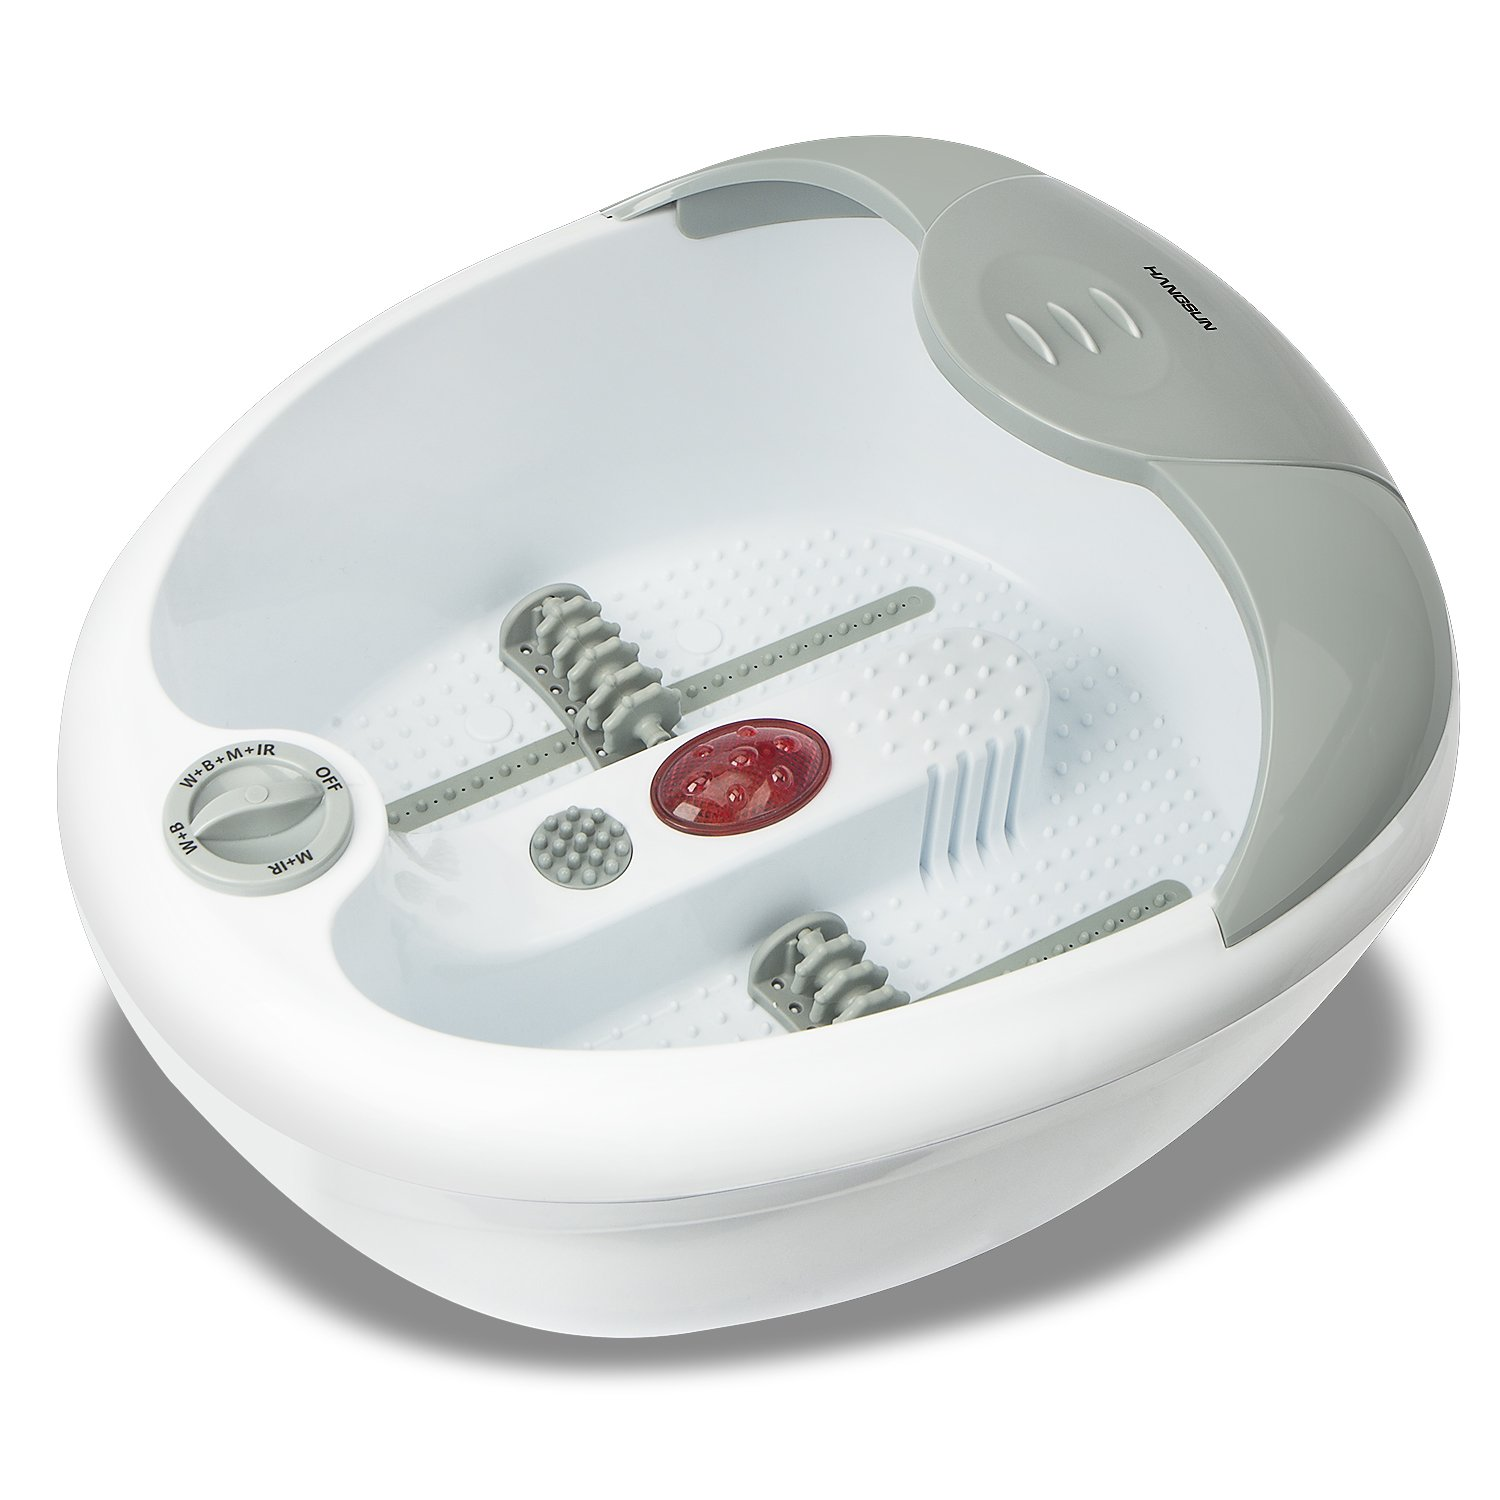 Foot Spa And Massager FM180 Foot Bath with Infrared Heater, Magnetic Field Therapy for Foot Care